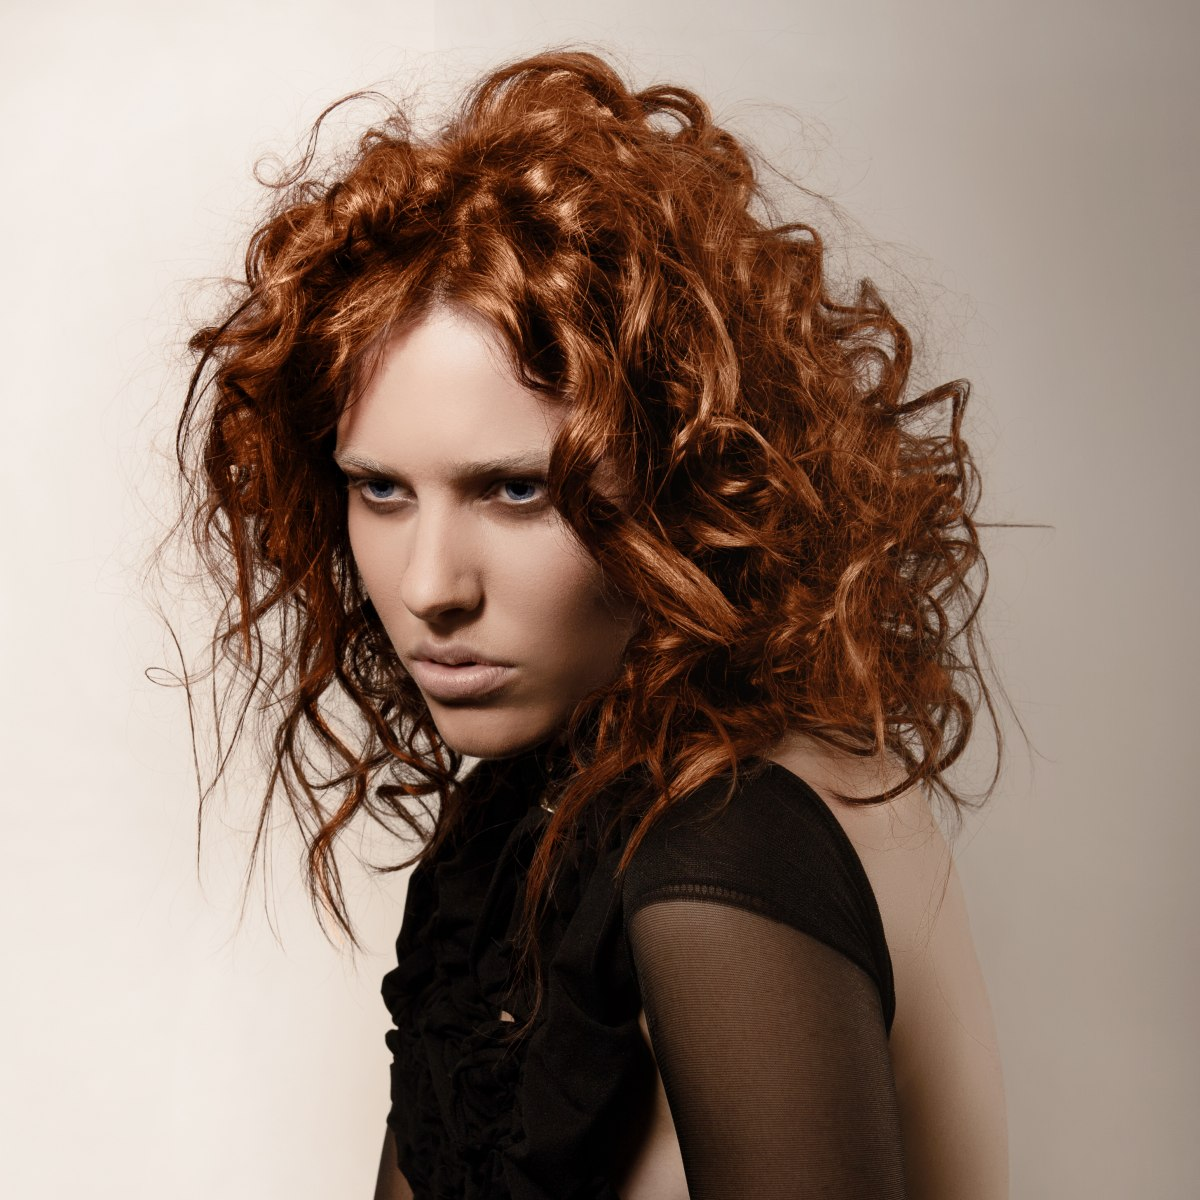 Hairstyle With Wild Copper Colored Curls And Messy Styling